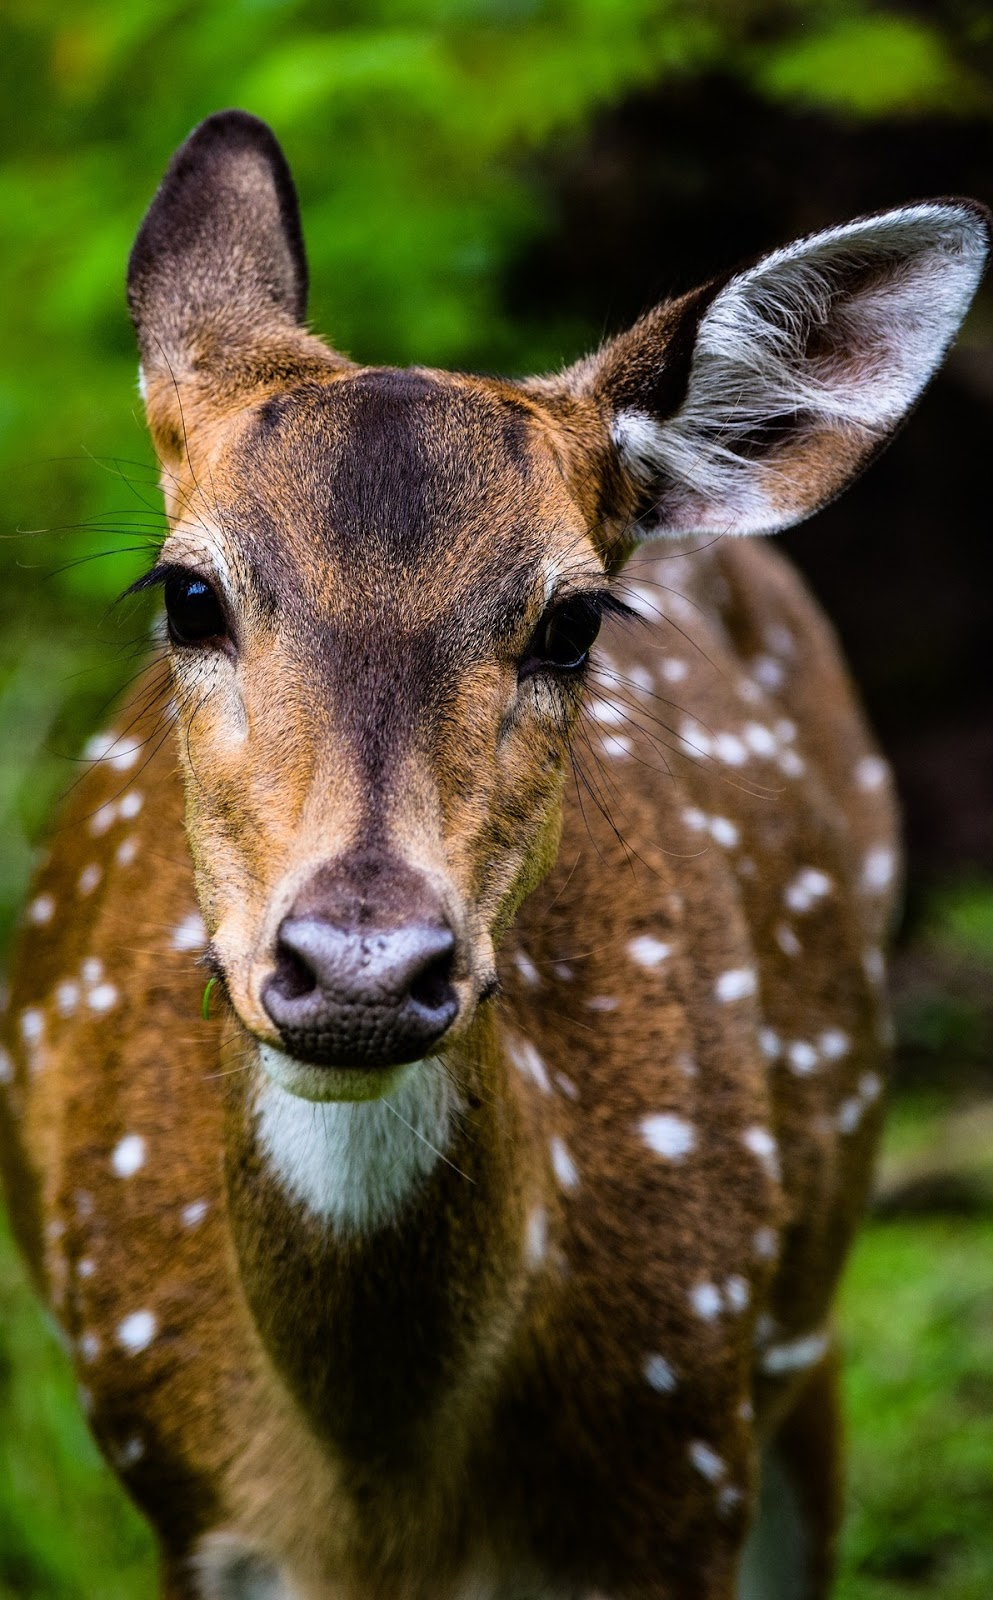 Face of a deer.